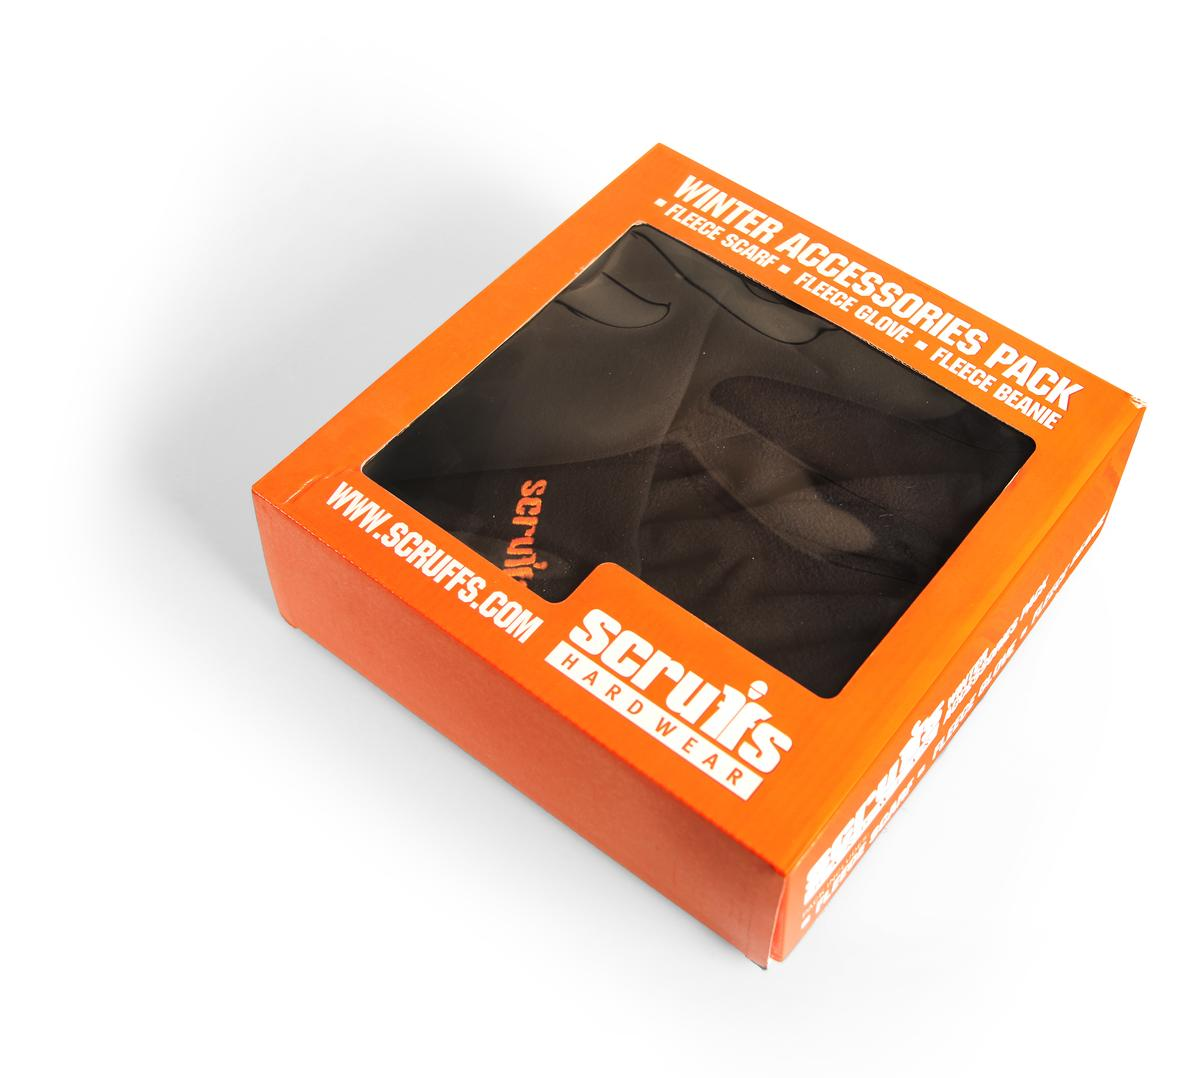 Scruffs winter accessories box